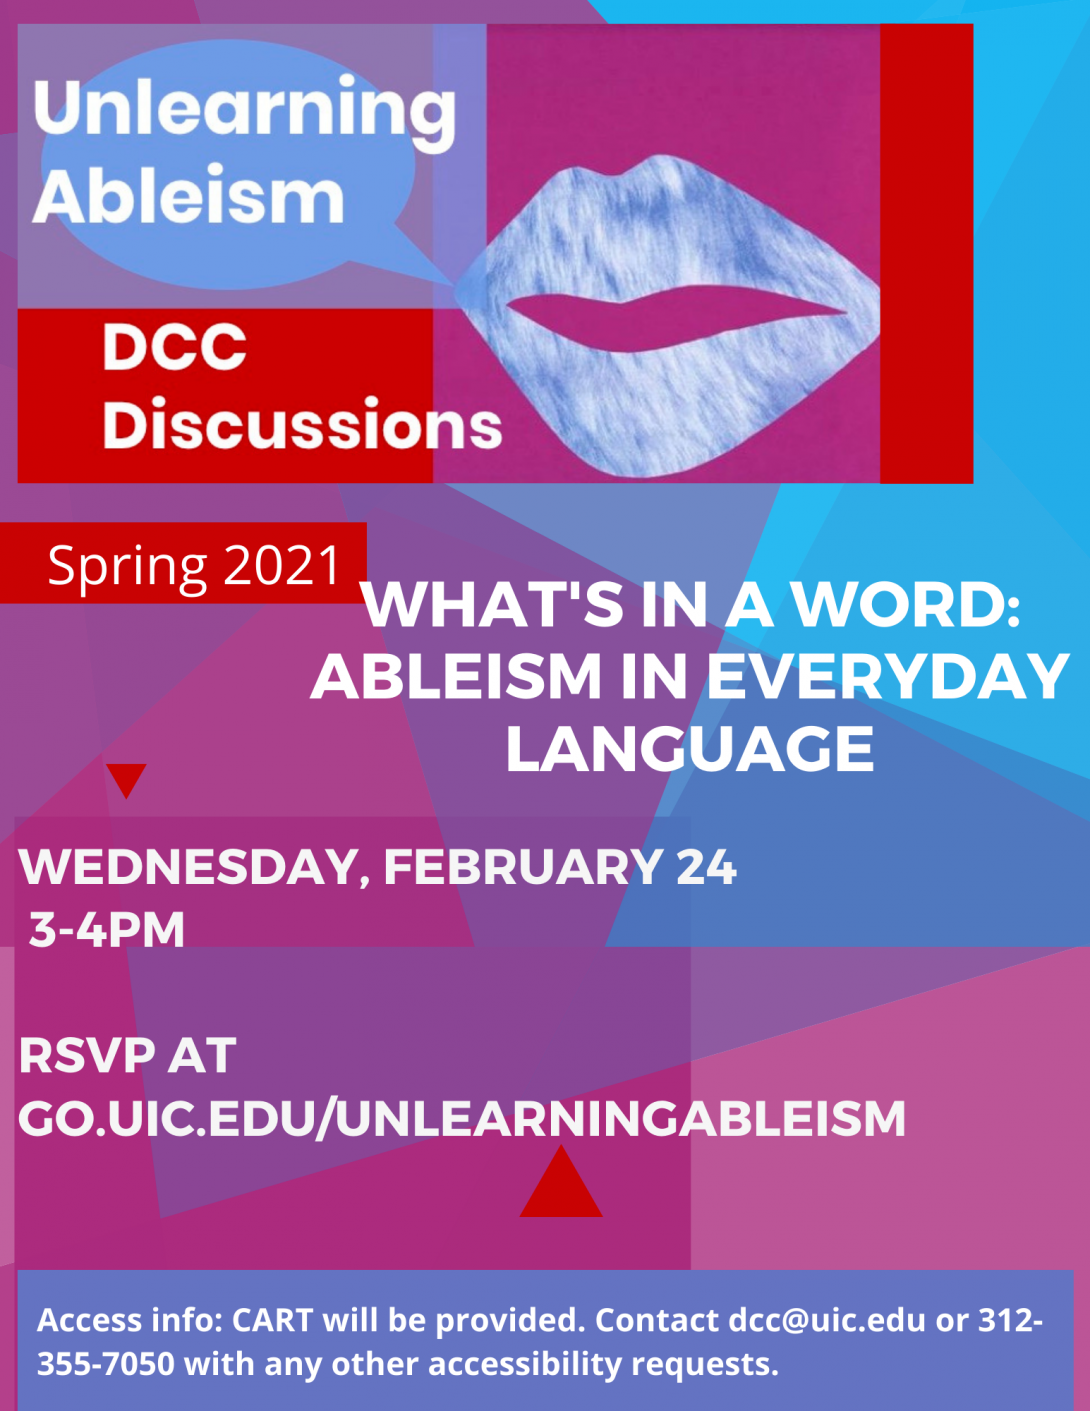 White lettering on a purple, blue and pink prismatic background, with a large Unlearning Ableism logo at the top. The logo shows a pair of large blue lips with a speech bubble on top of fuchsia, red, and blue squares. There are some small red shapes dotting the poster and a blue band at the bottom with the access info.